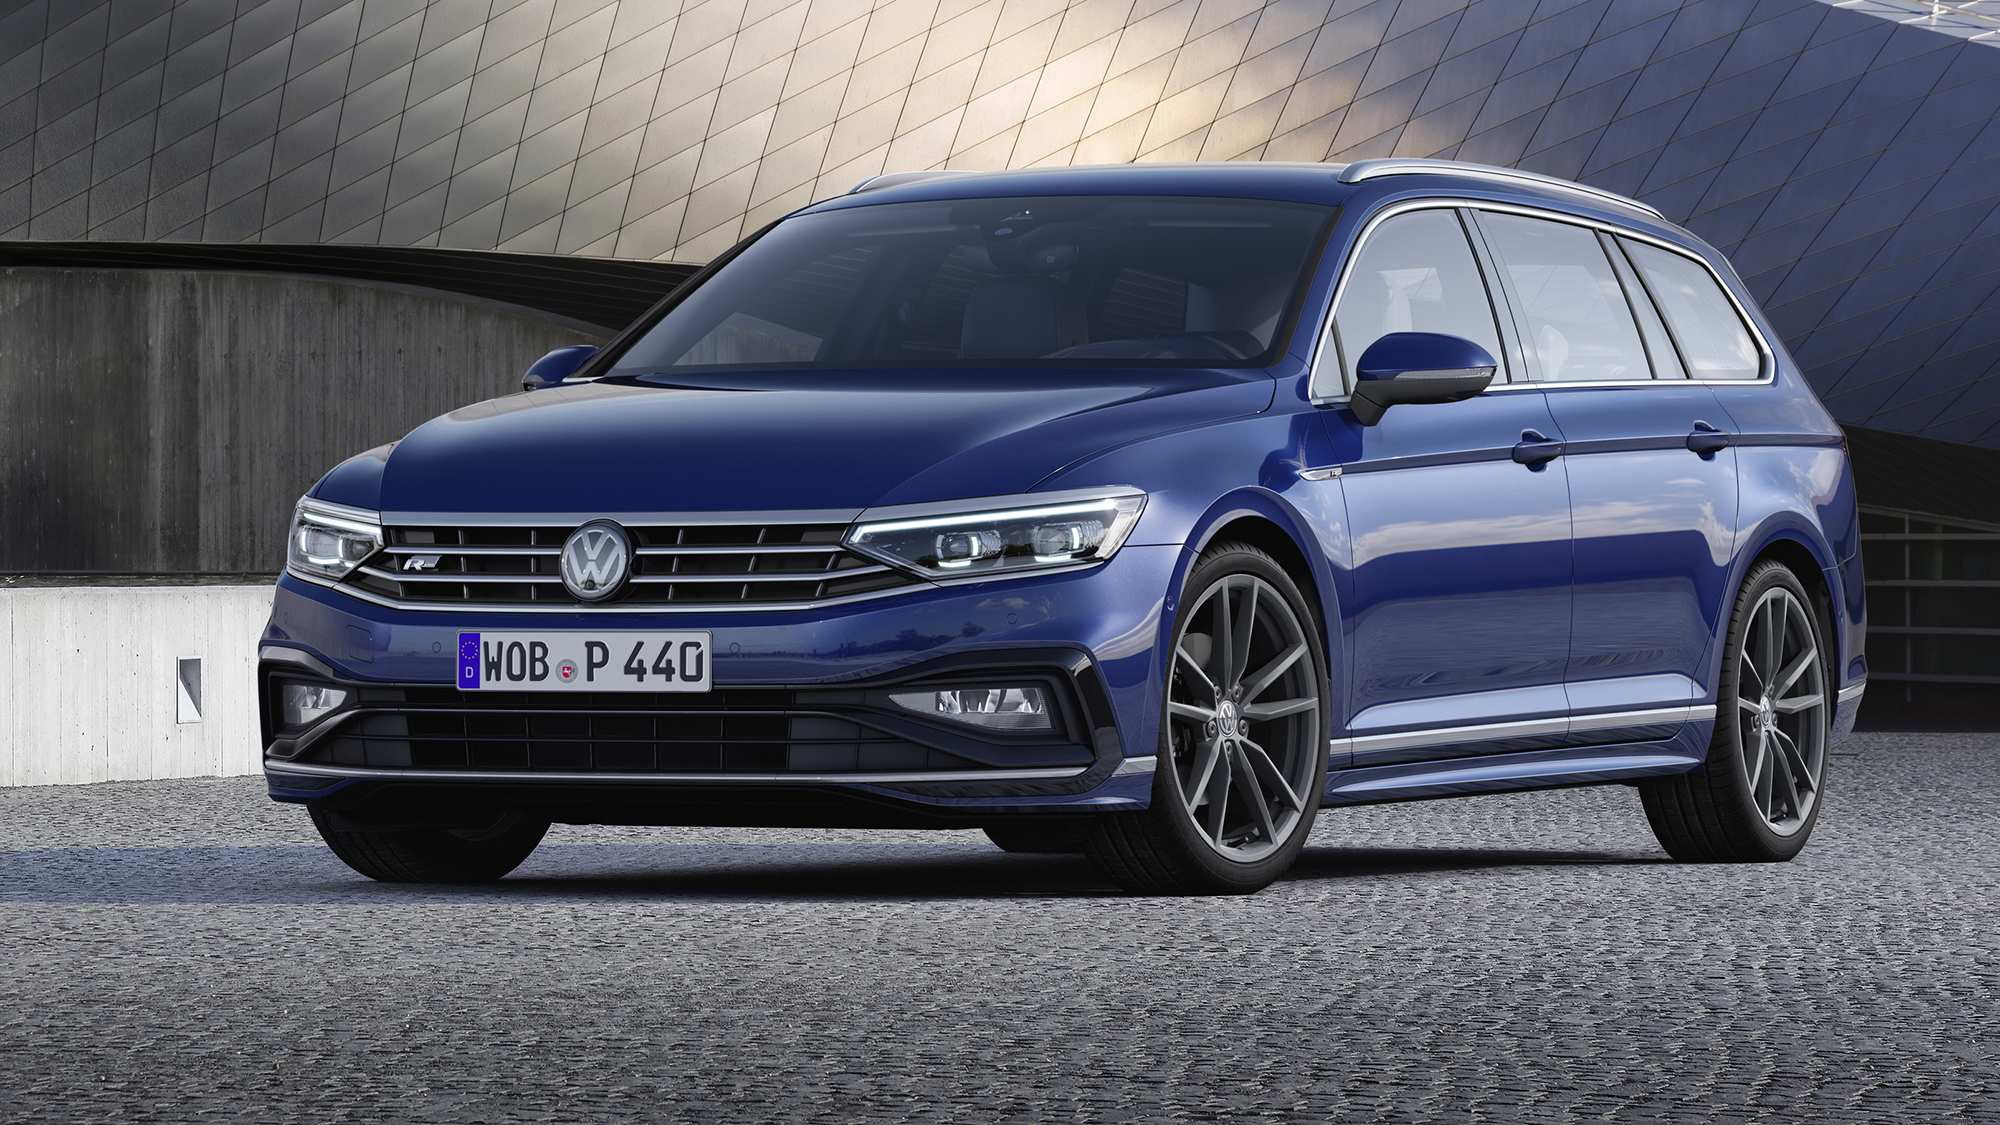 36 All New Volkswagen New Passat 2020 Review And Release Date